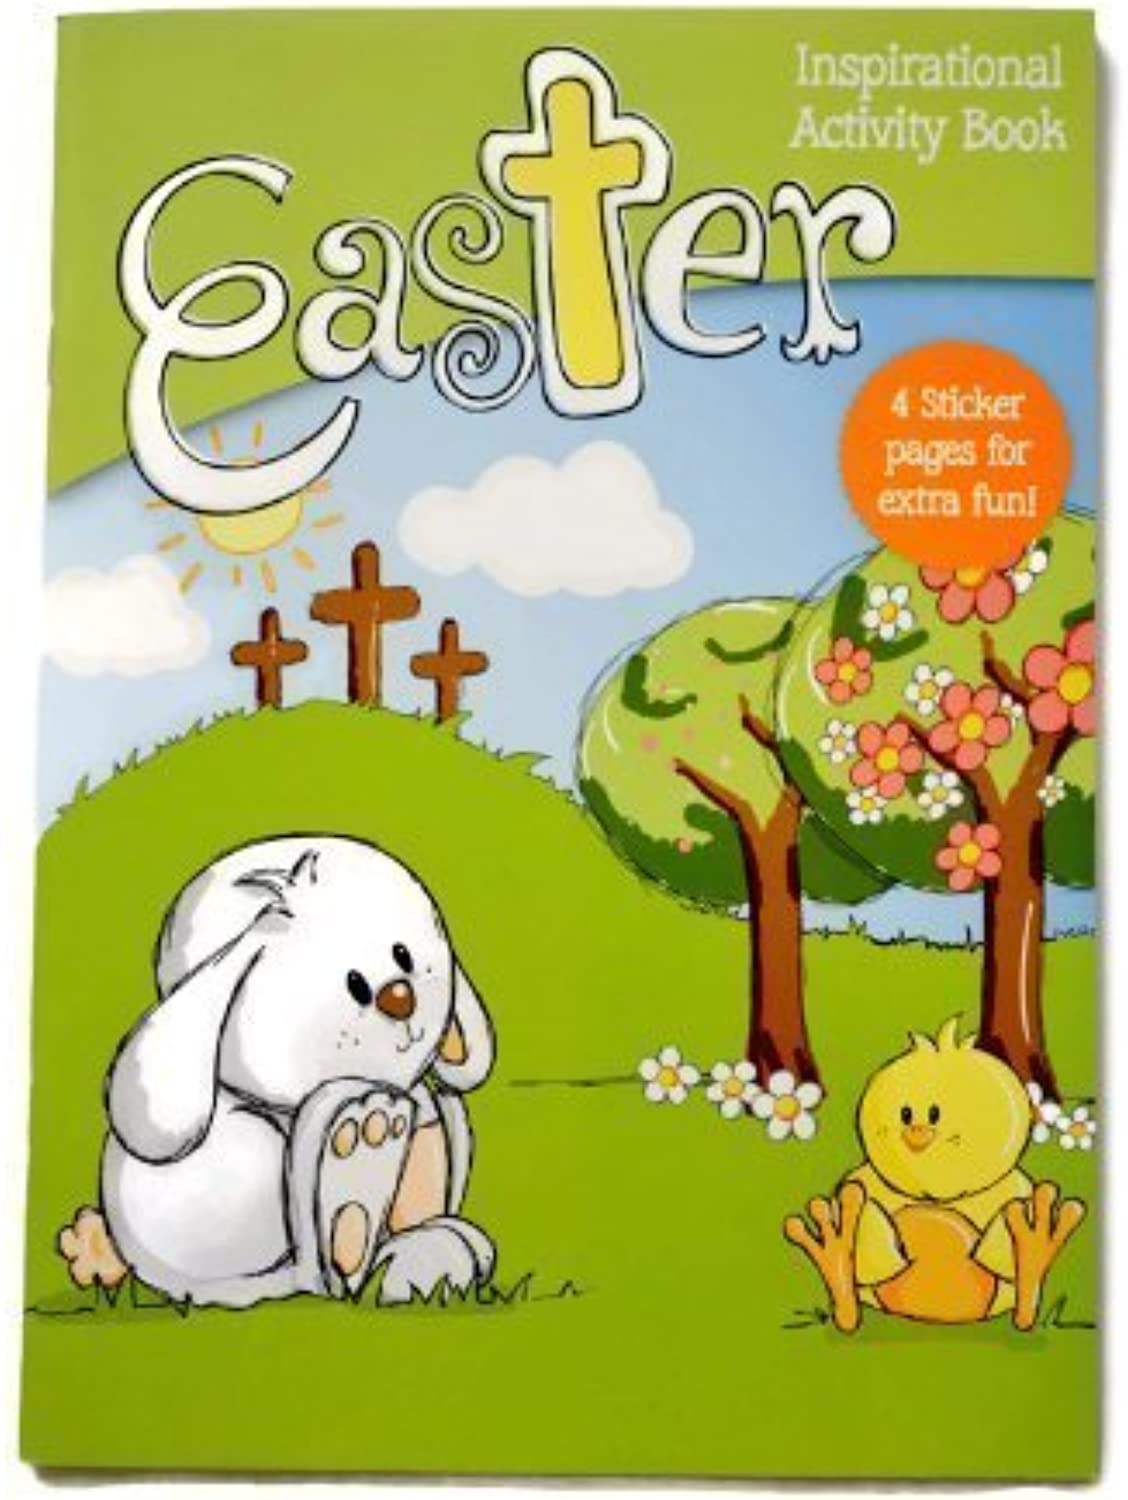 Easter Inspirational Activity Book by Dayspring